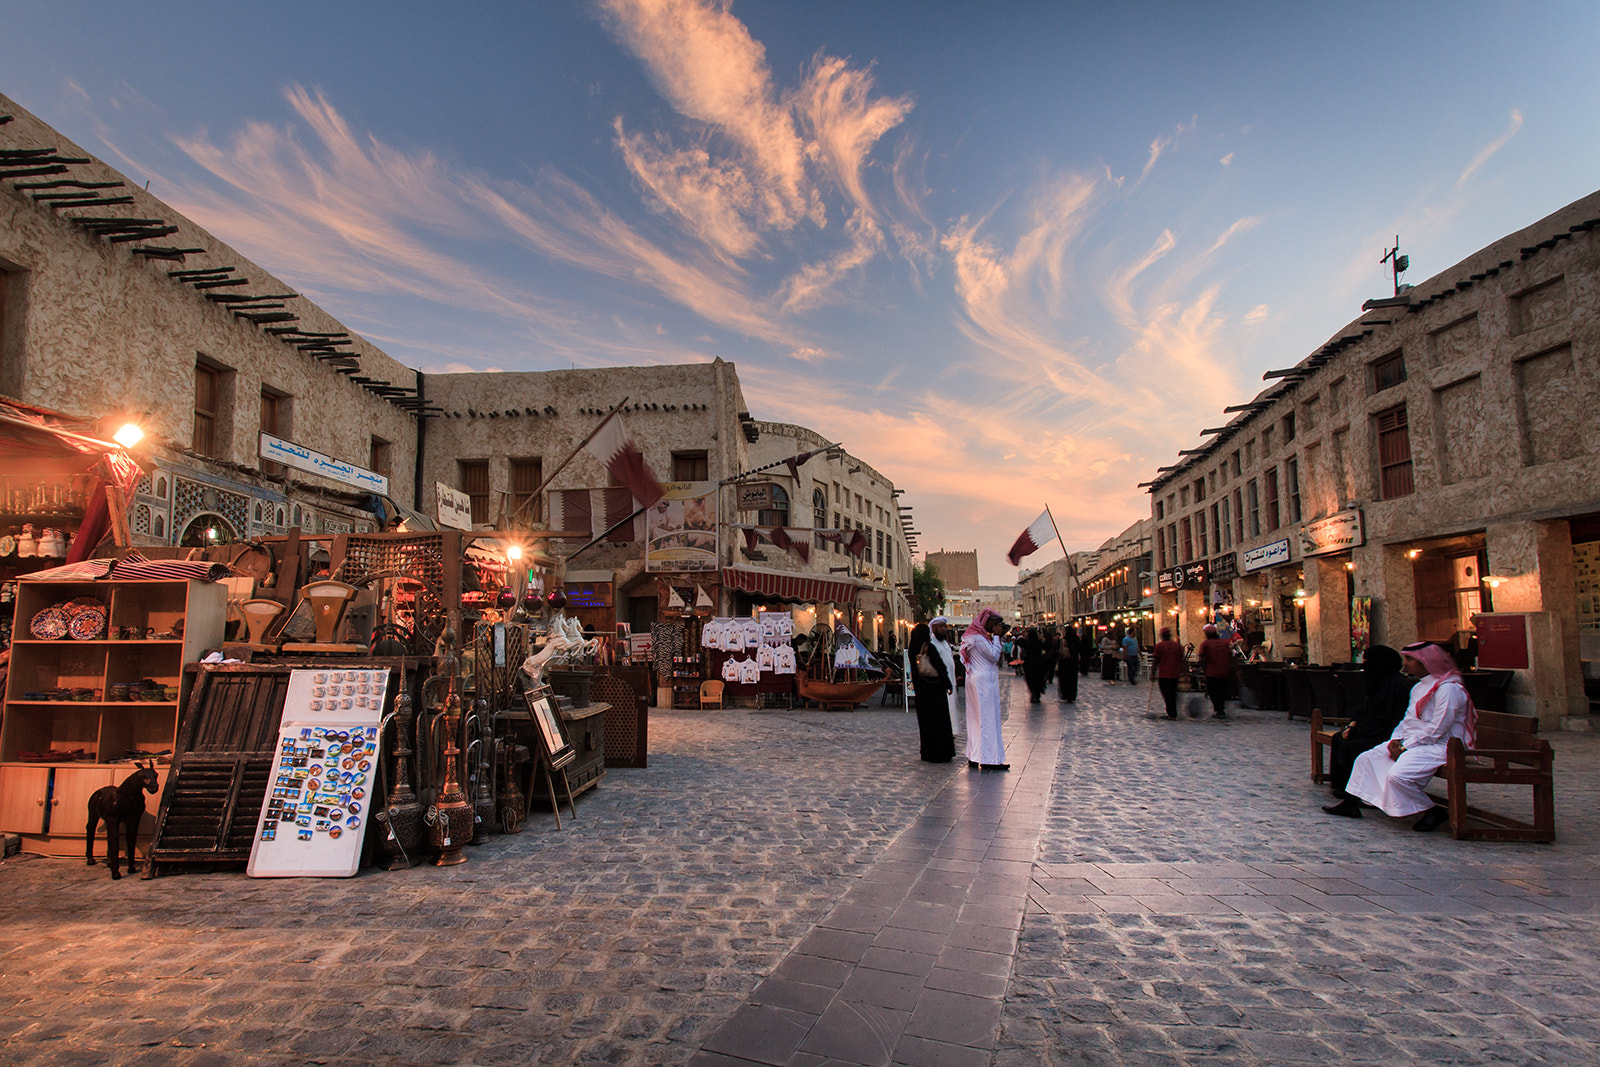 Photograph Sunset at Souq Waqif by Helminadia Ranford on 500px